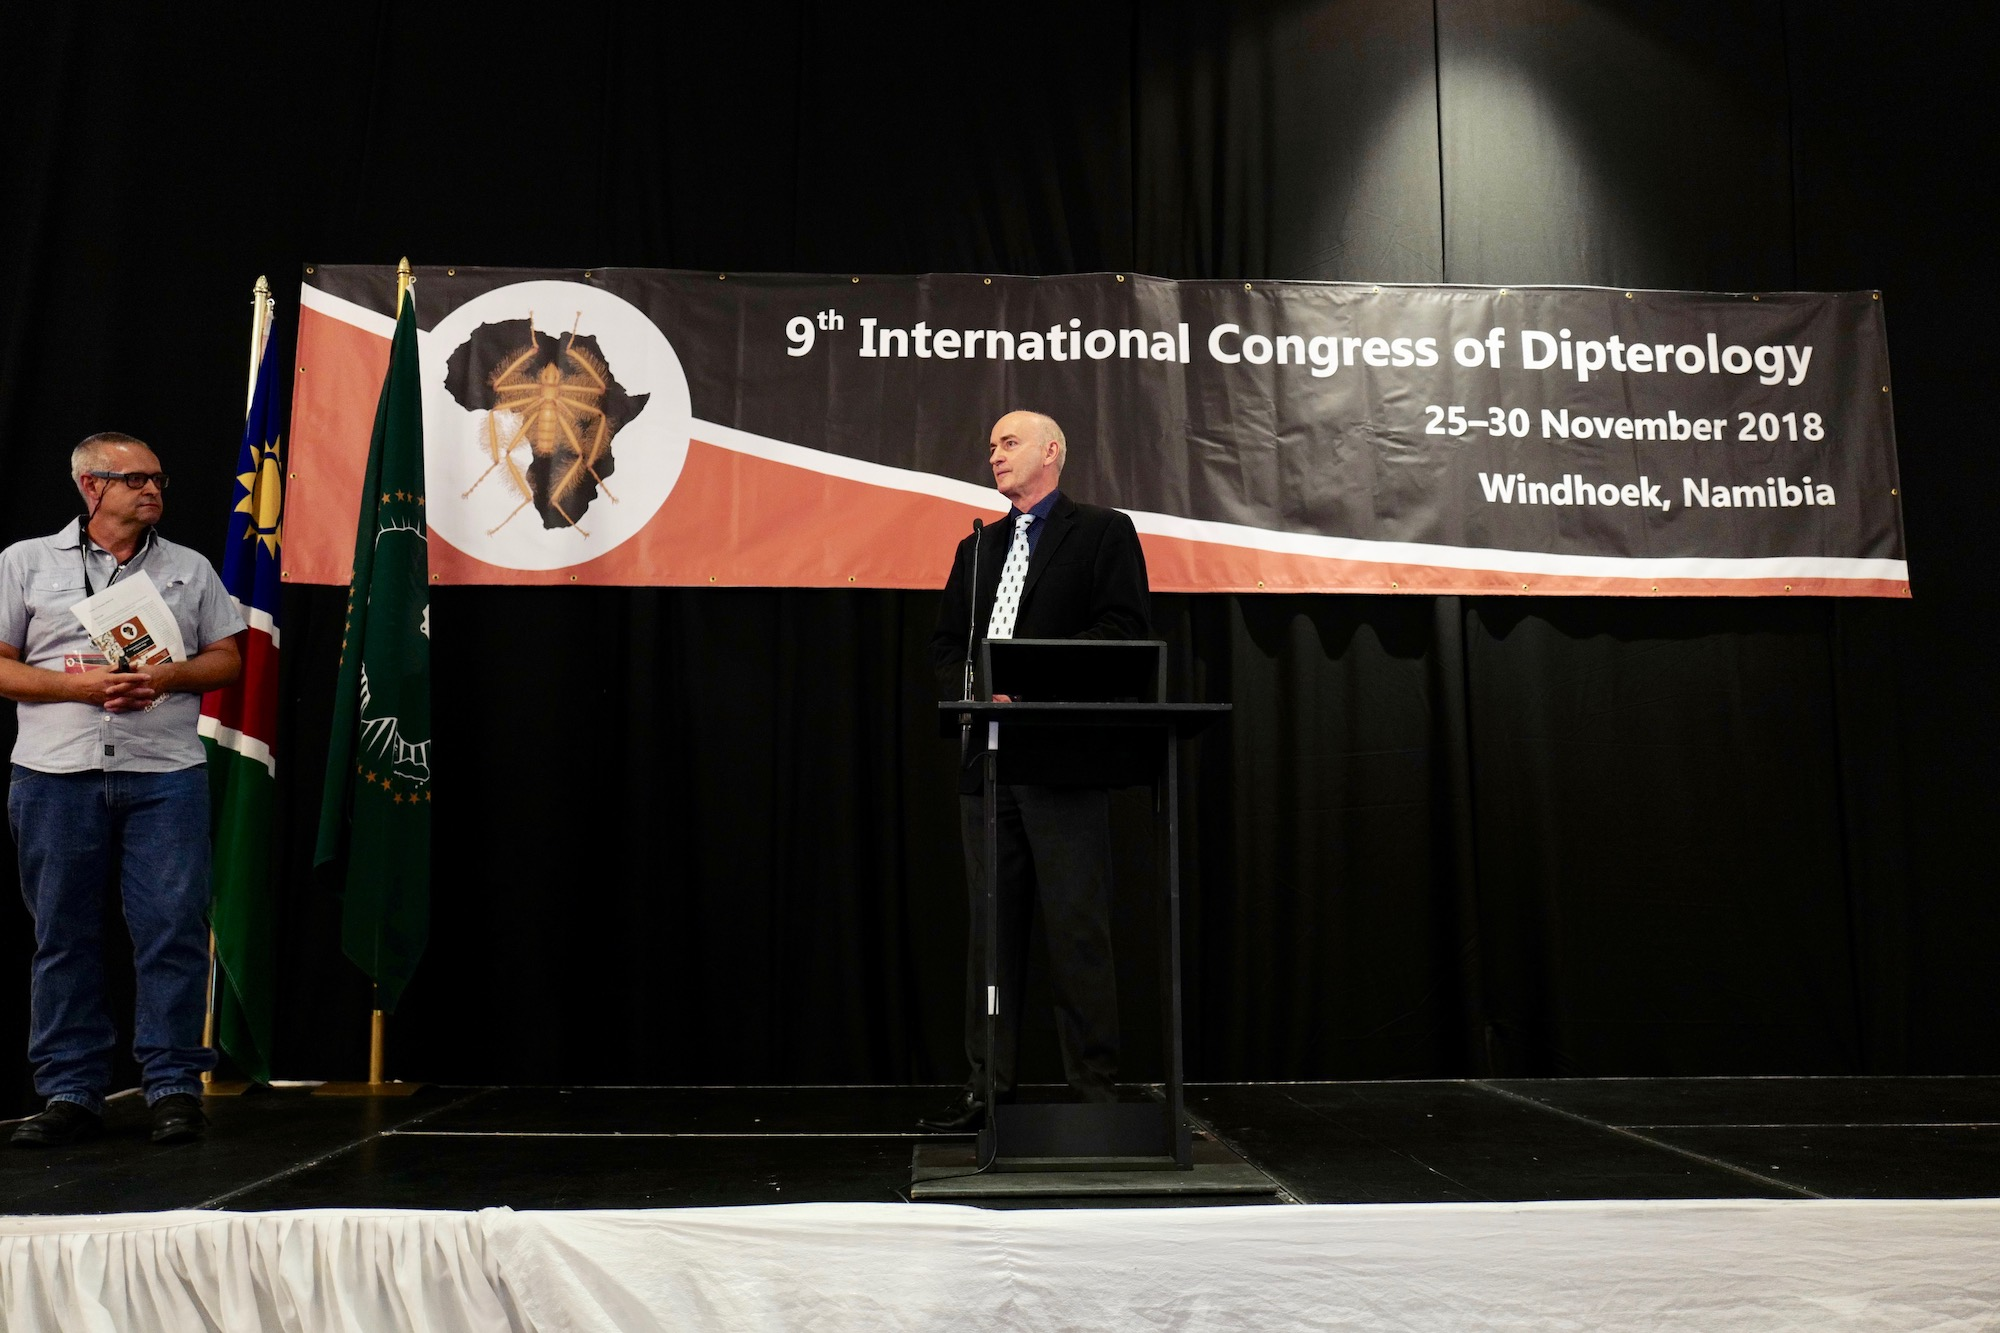 mark_benecke_ICD9_dipterology_world_congress_windhoeck_namibia - 128.jpg